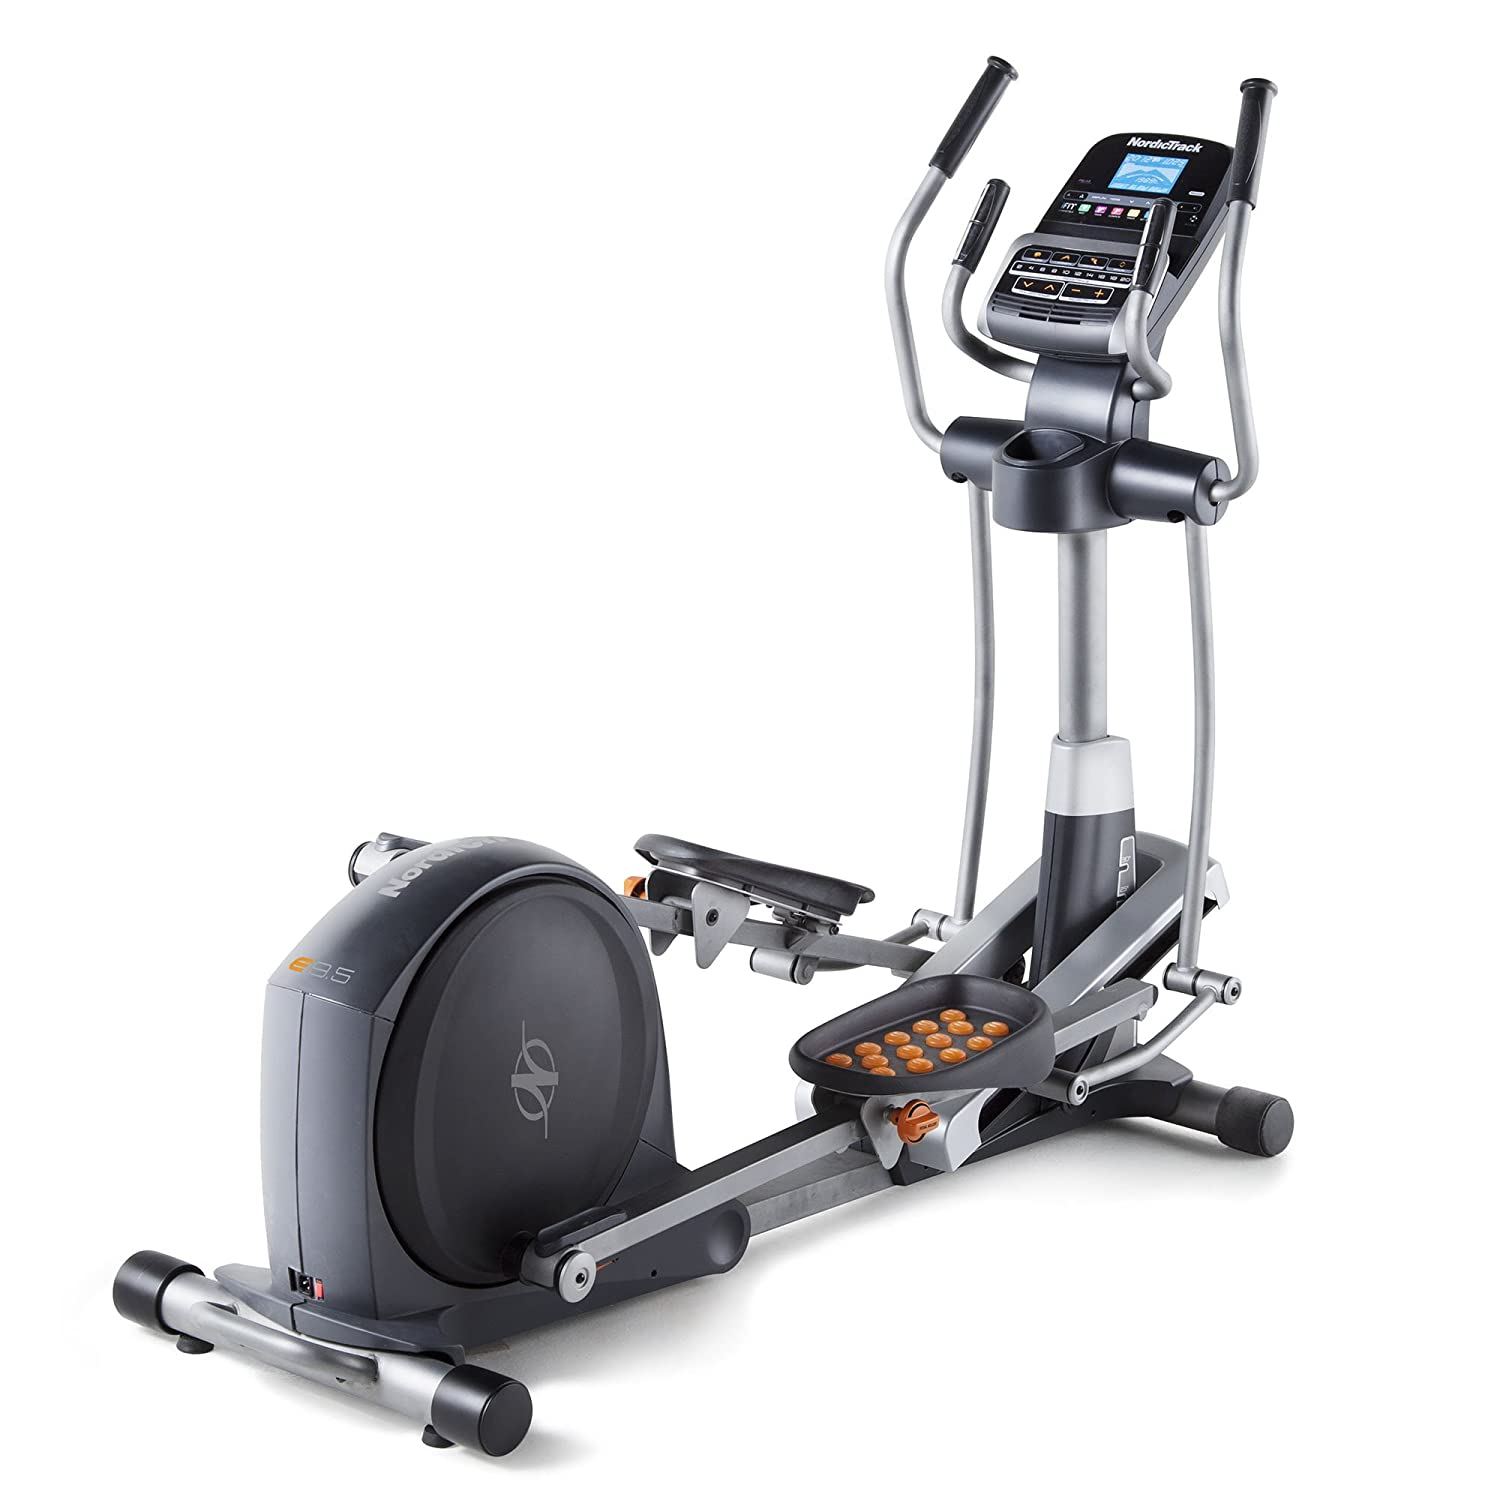 Nordic Track Elliptical Cross Trainer